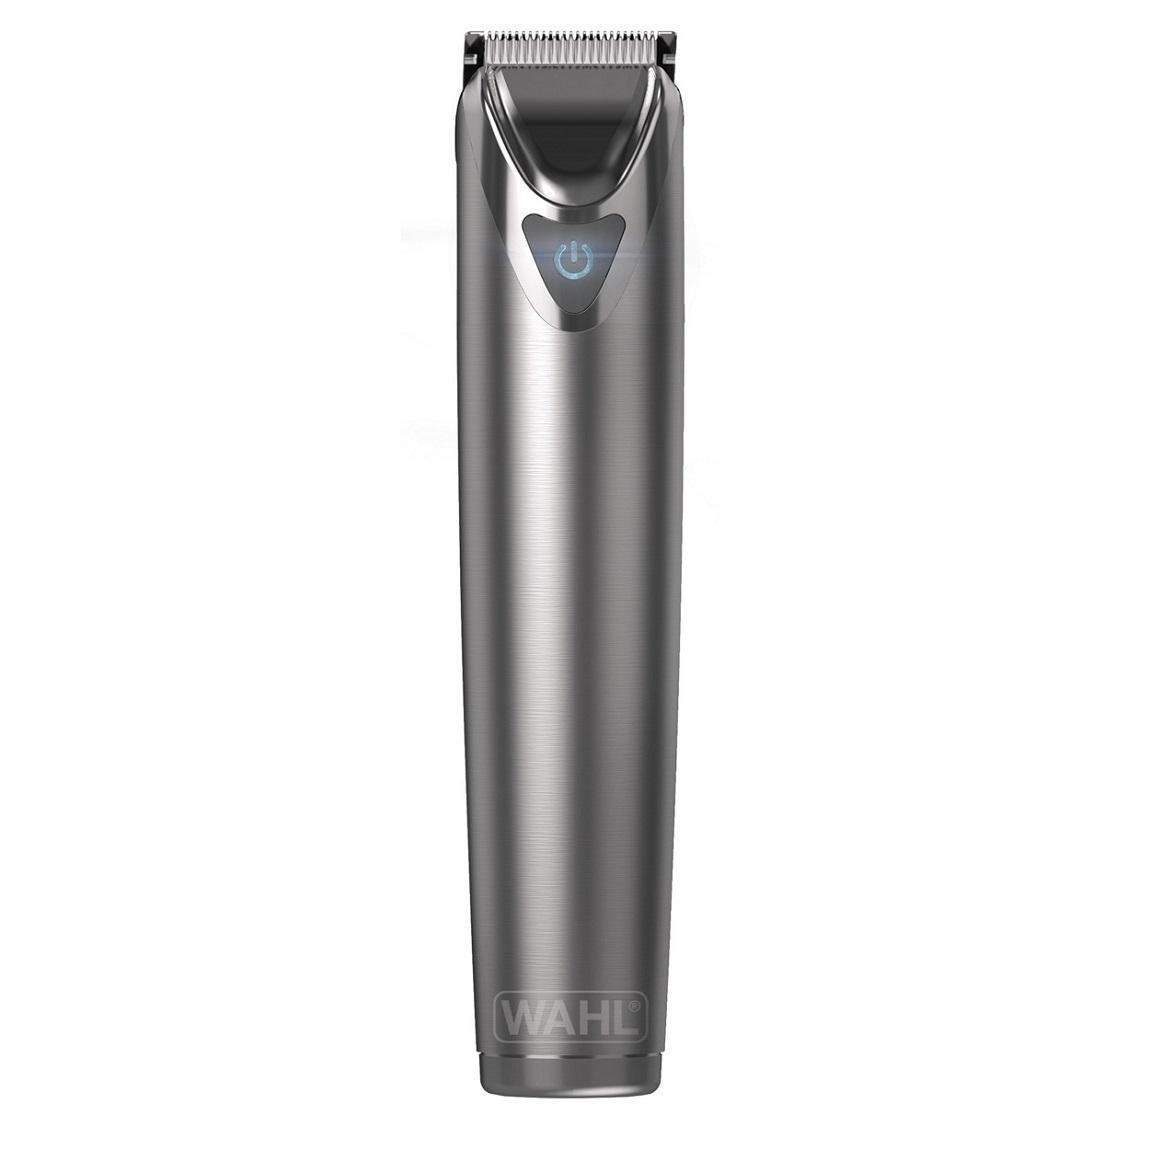 WAHL-9818-800-clippers.jpg